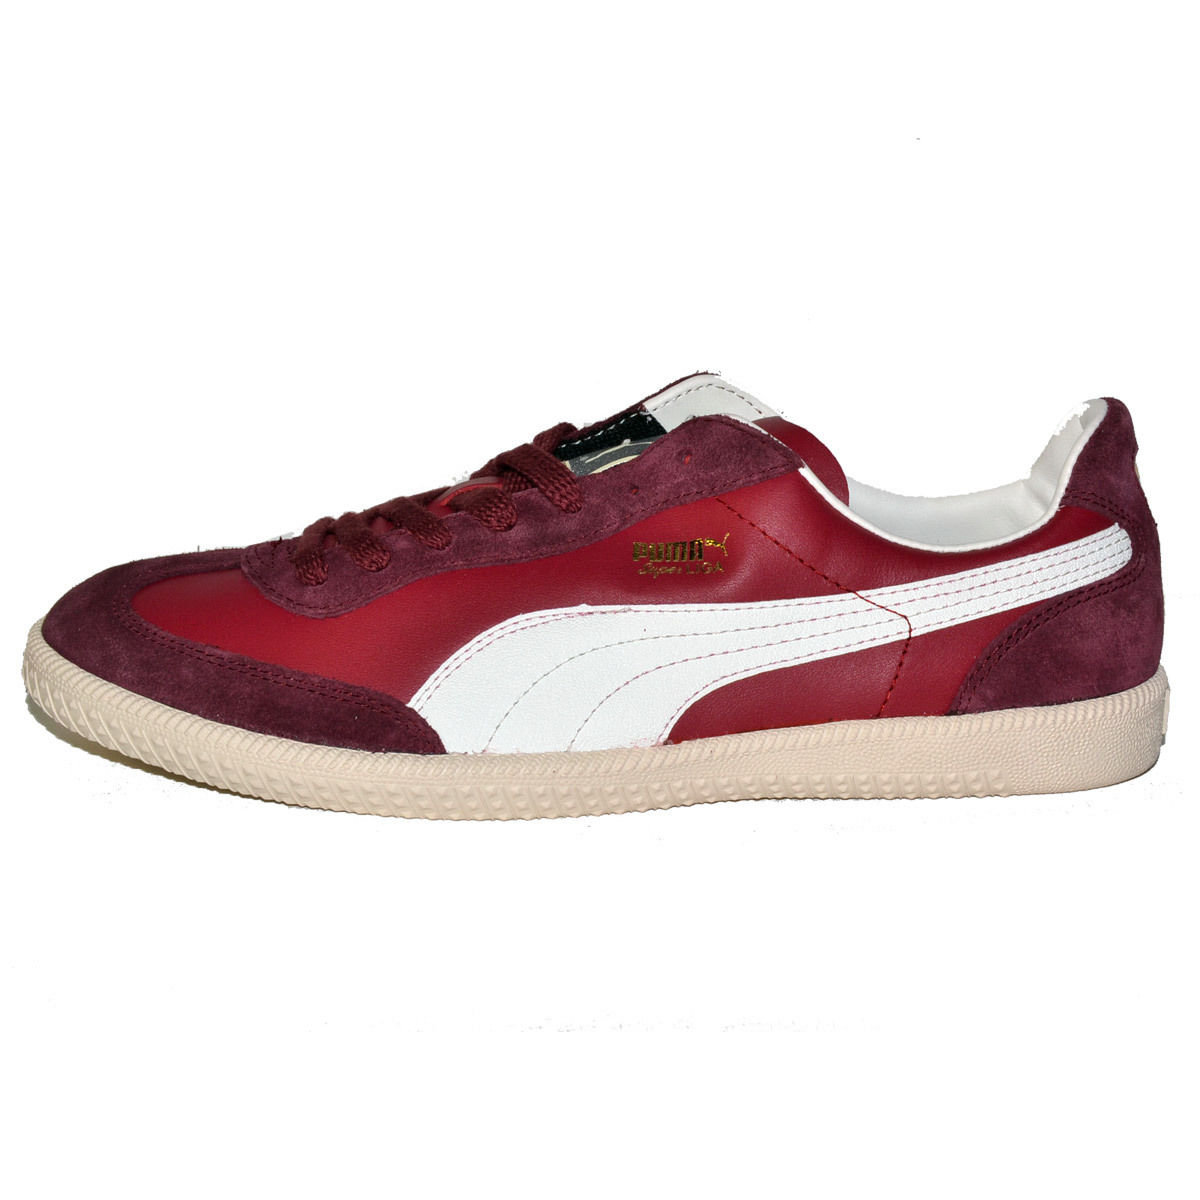 08ceaf99d07 PUMA Super Liga OG Shoes Retro Style Trainers Sneakers